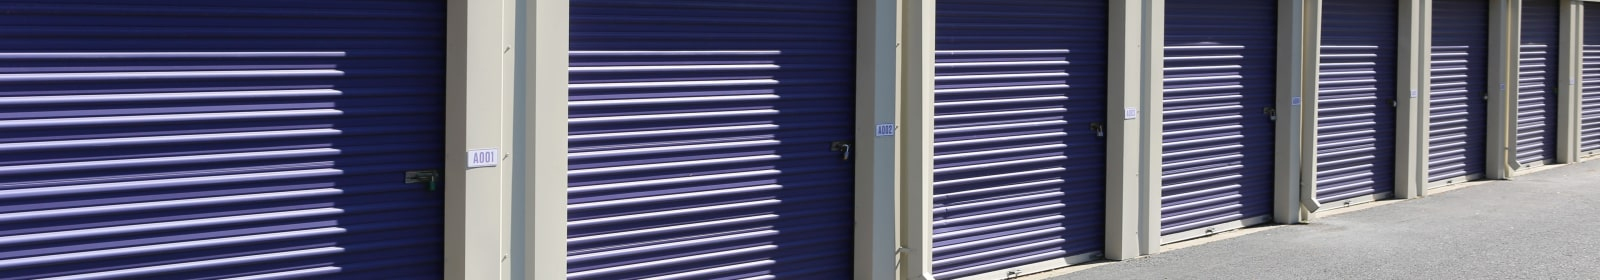 Business storage at StoreSmart Self-Storage in Raleigh, North Carolina